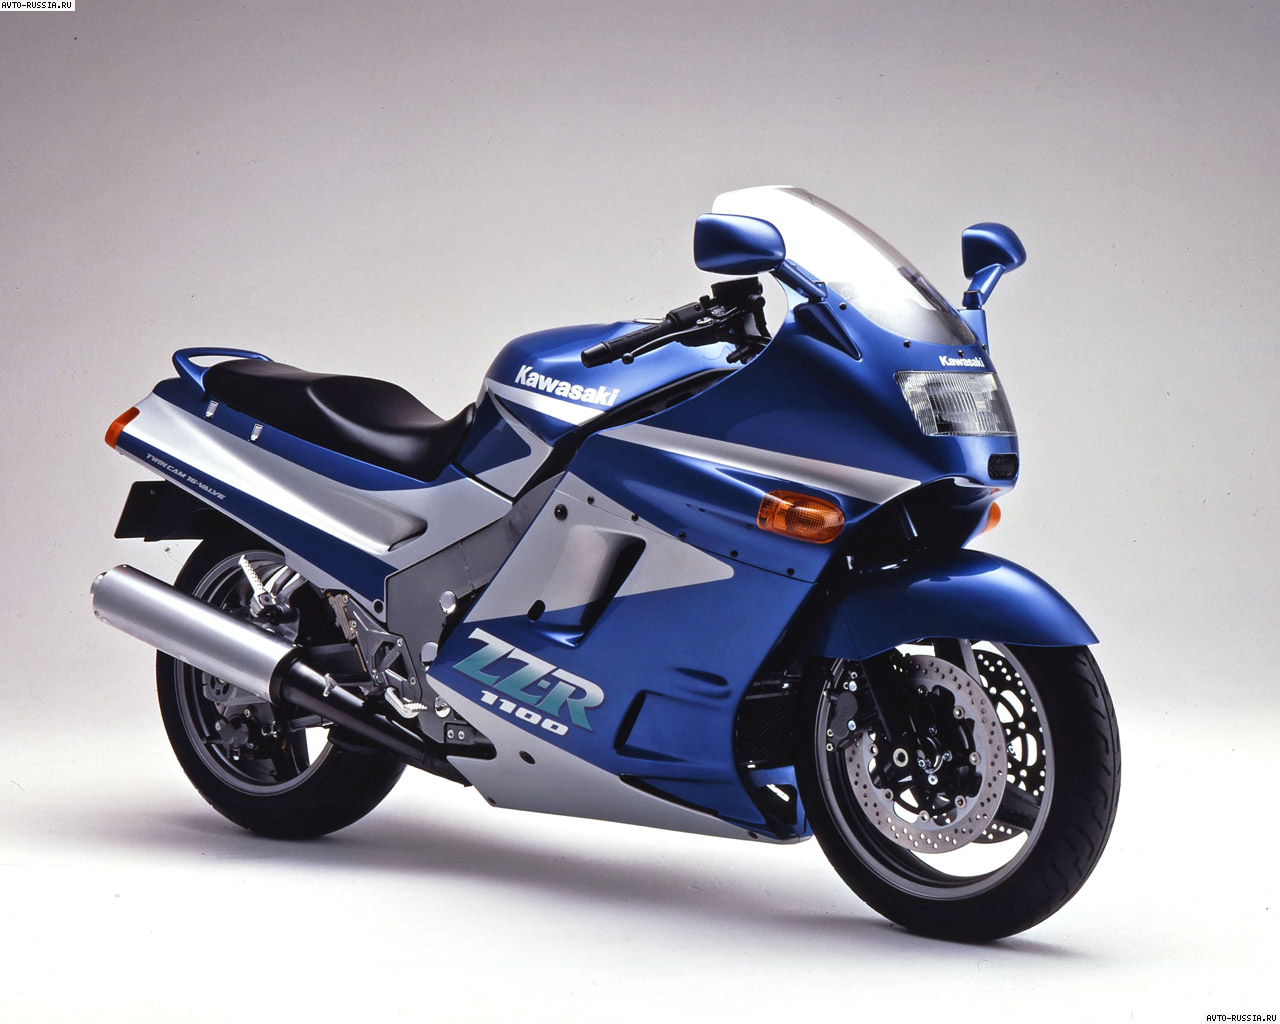 1992 Kawasaki Zzr 1100 Pics Specs And Information